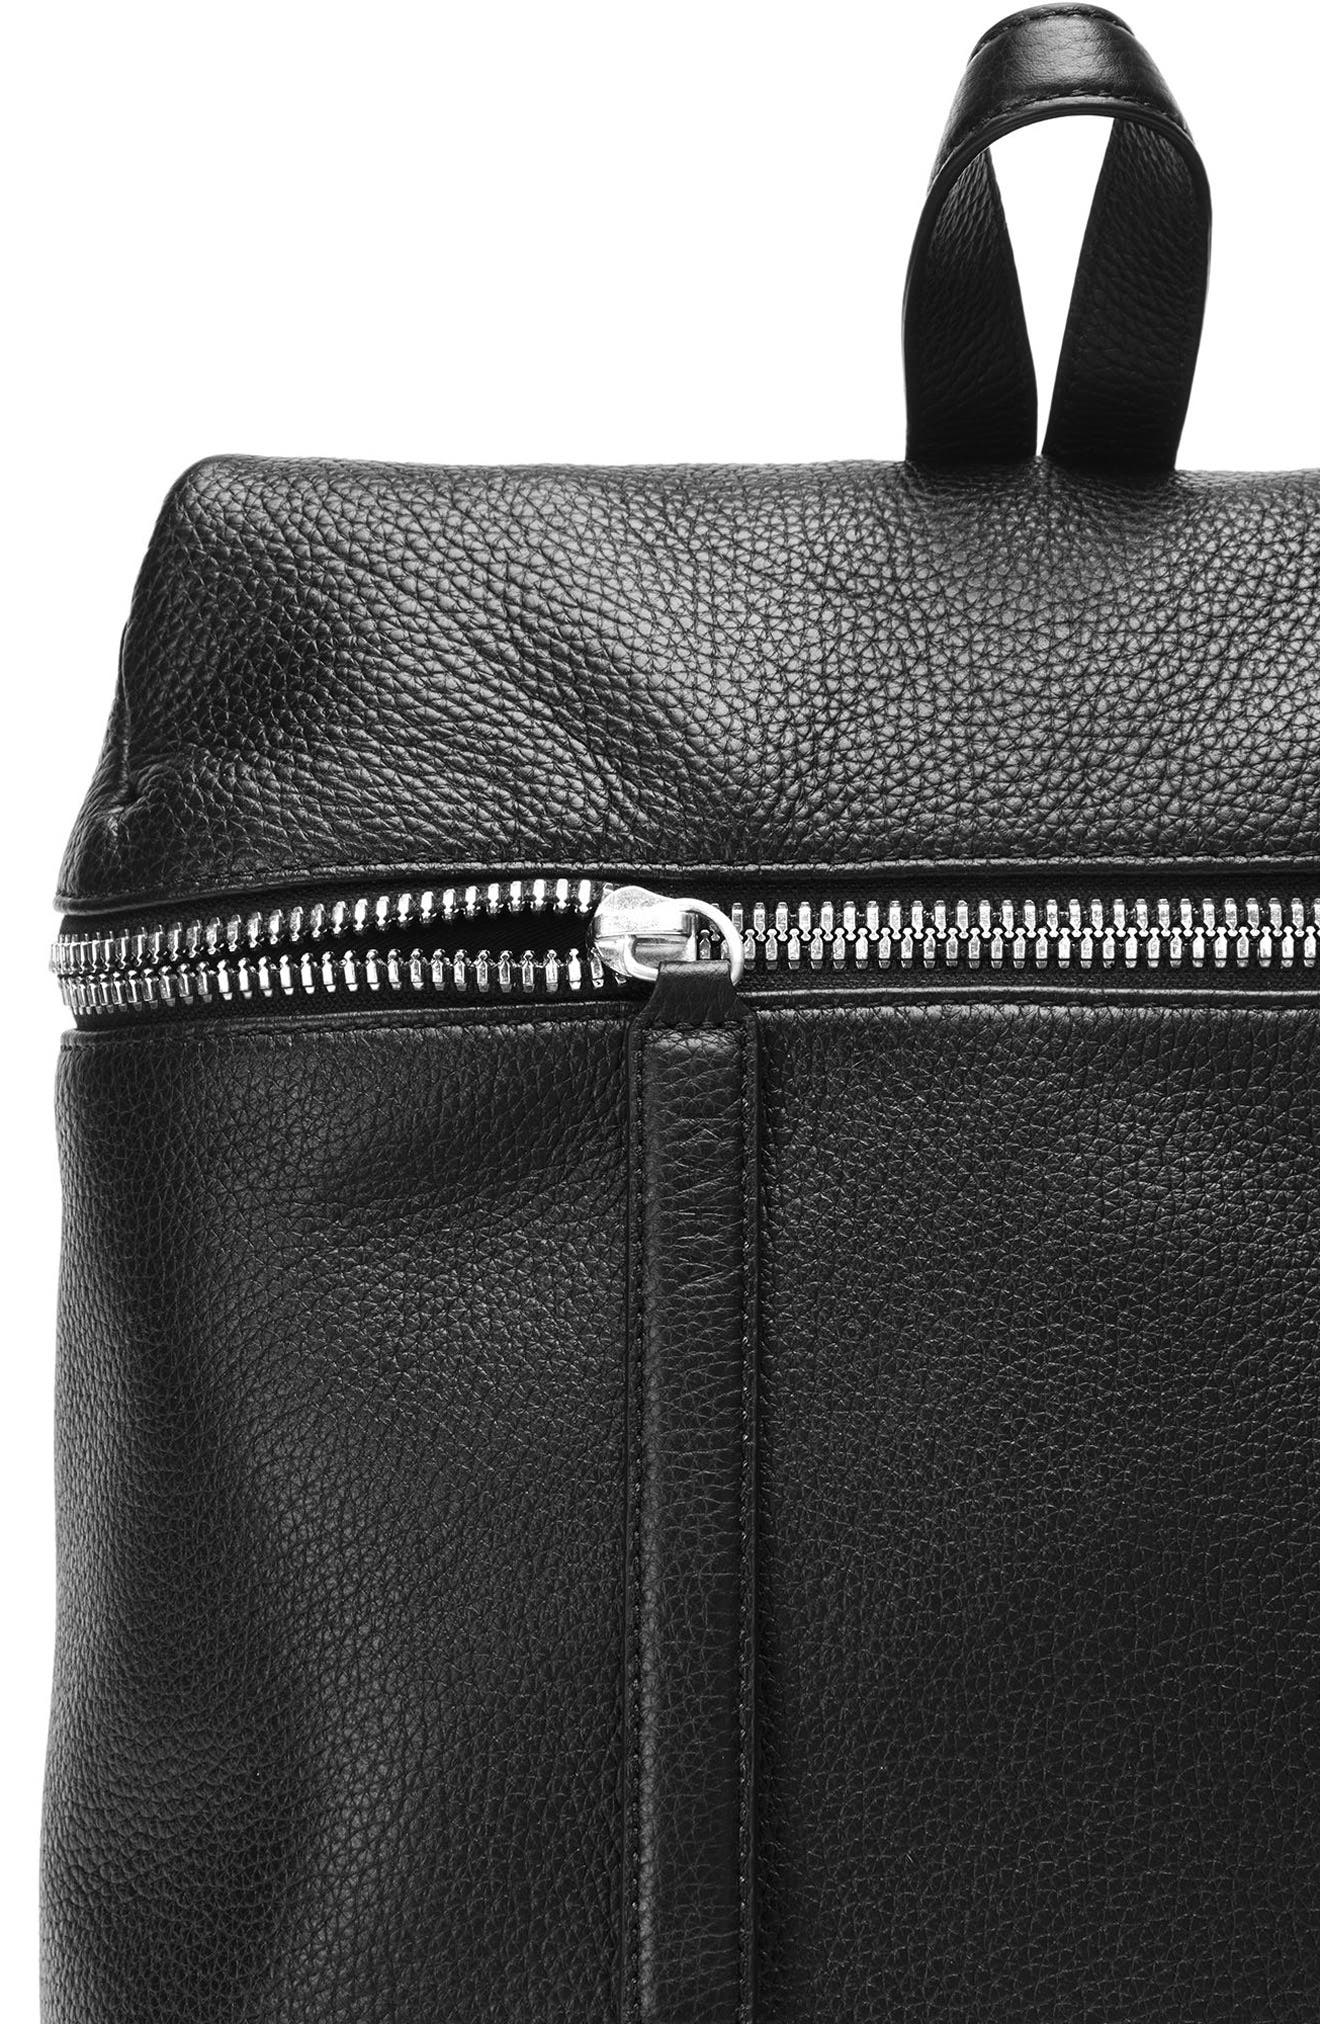 Leather Backpack,                             Alternate thumbnail 6, color,                             Black